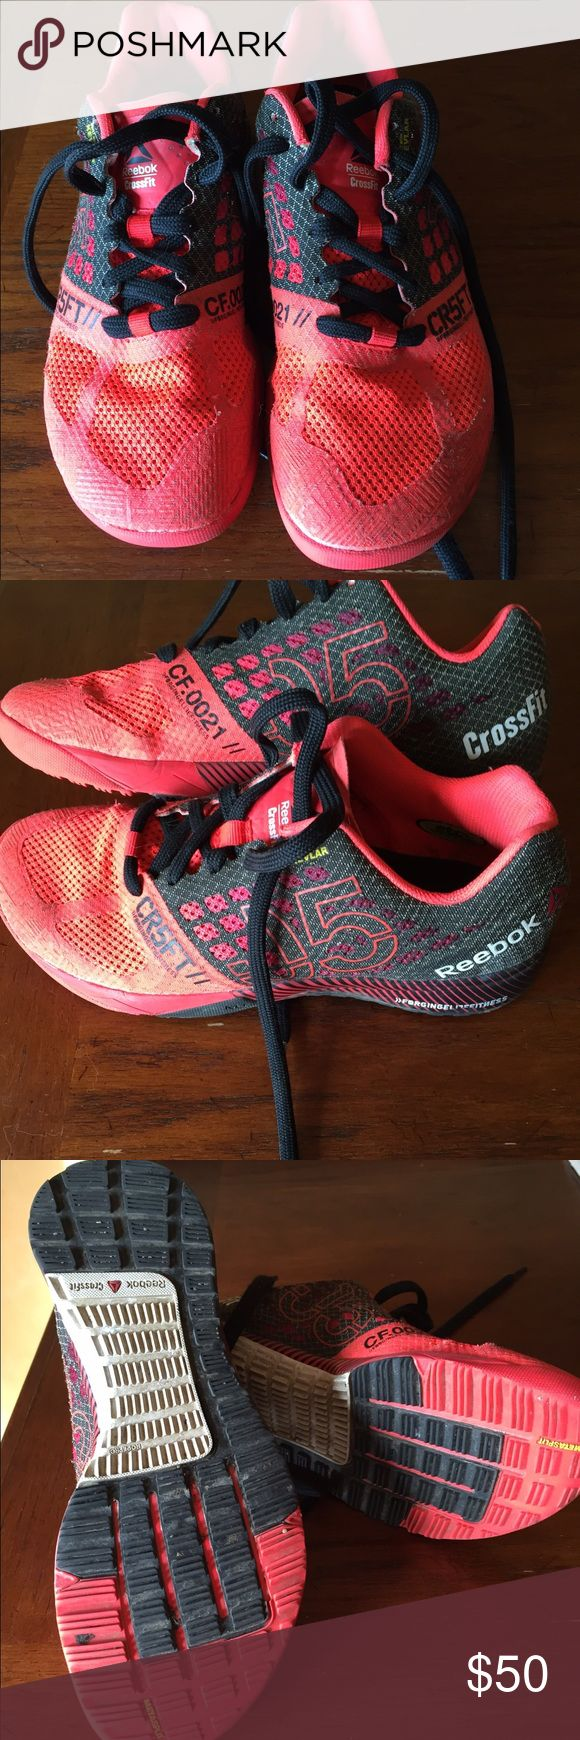 Reebok Crossfit Nano 5 sz 7 Reebok Crossfit Nano 5. Size 7. Worn a few times. Have too many pairs-time to spring clean my collection.  Great bright red with black accent. Reebok Shoes Athletic Shoes